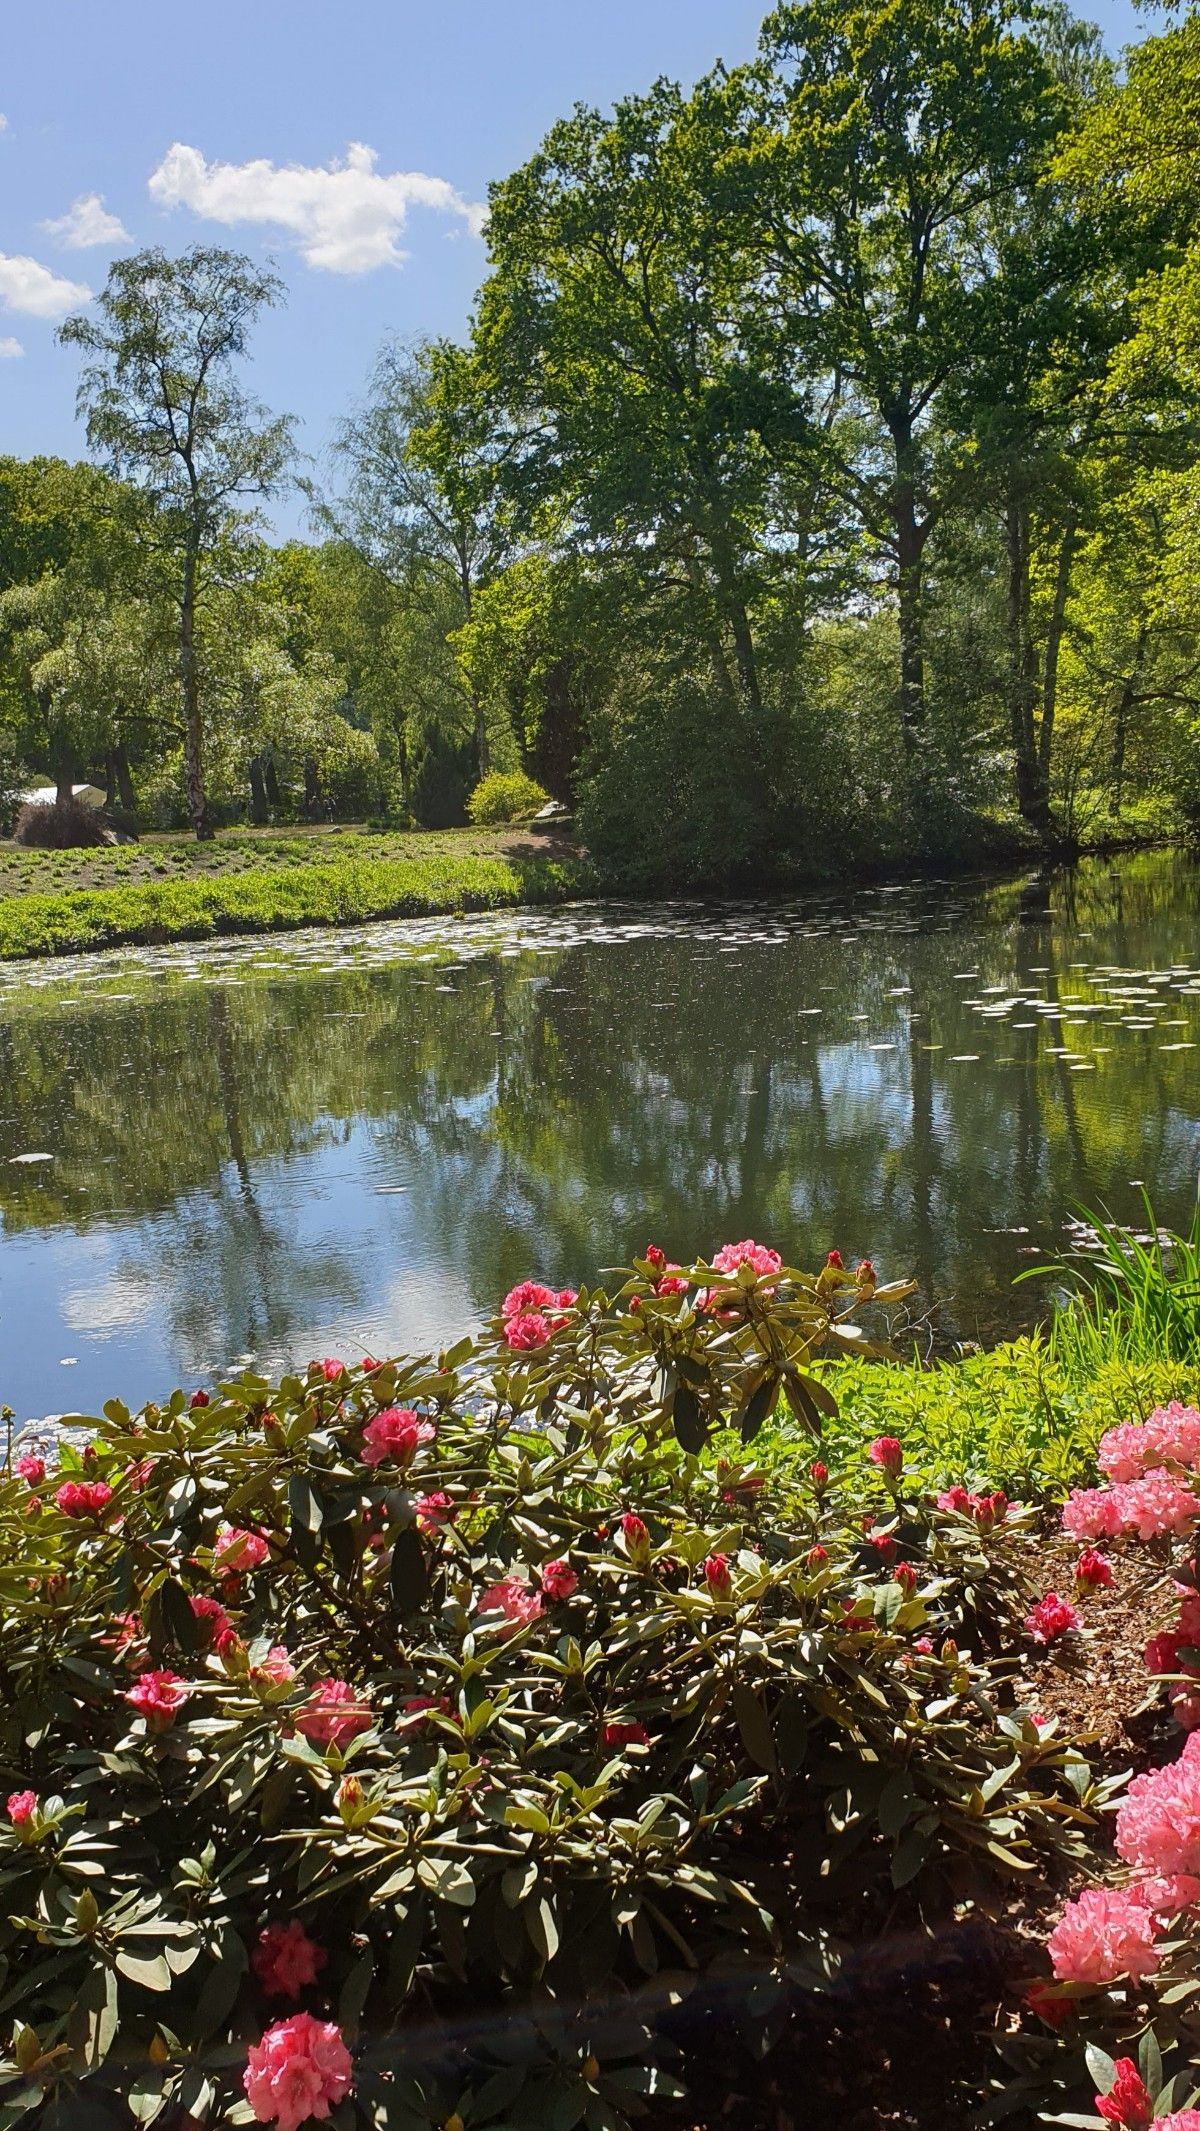 Pictures Of The Day 10 06 20 Rhododendron Park In Bremen Germany An Immersive Guide By Live Life Of Beauty Daily Magazine